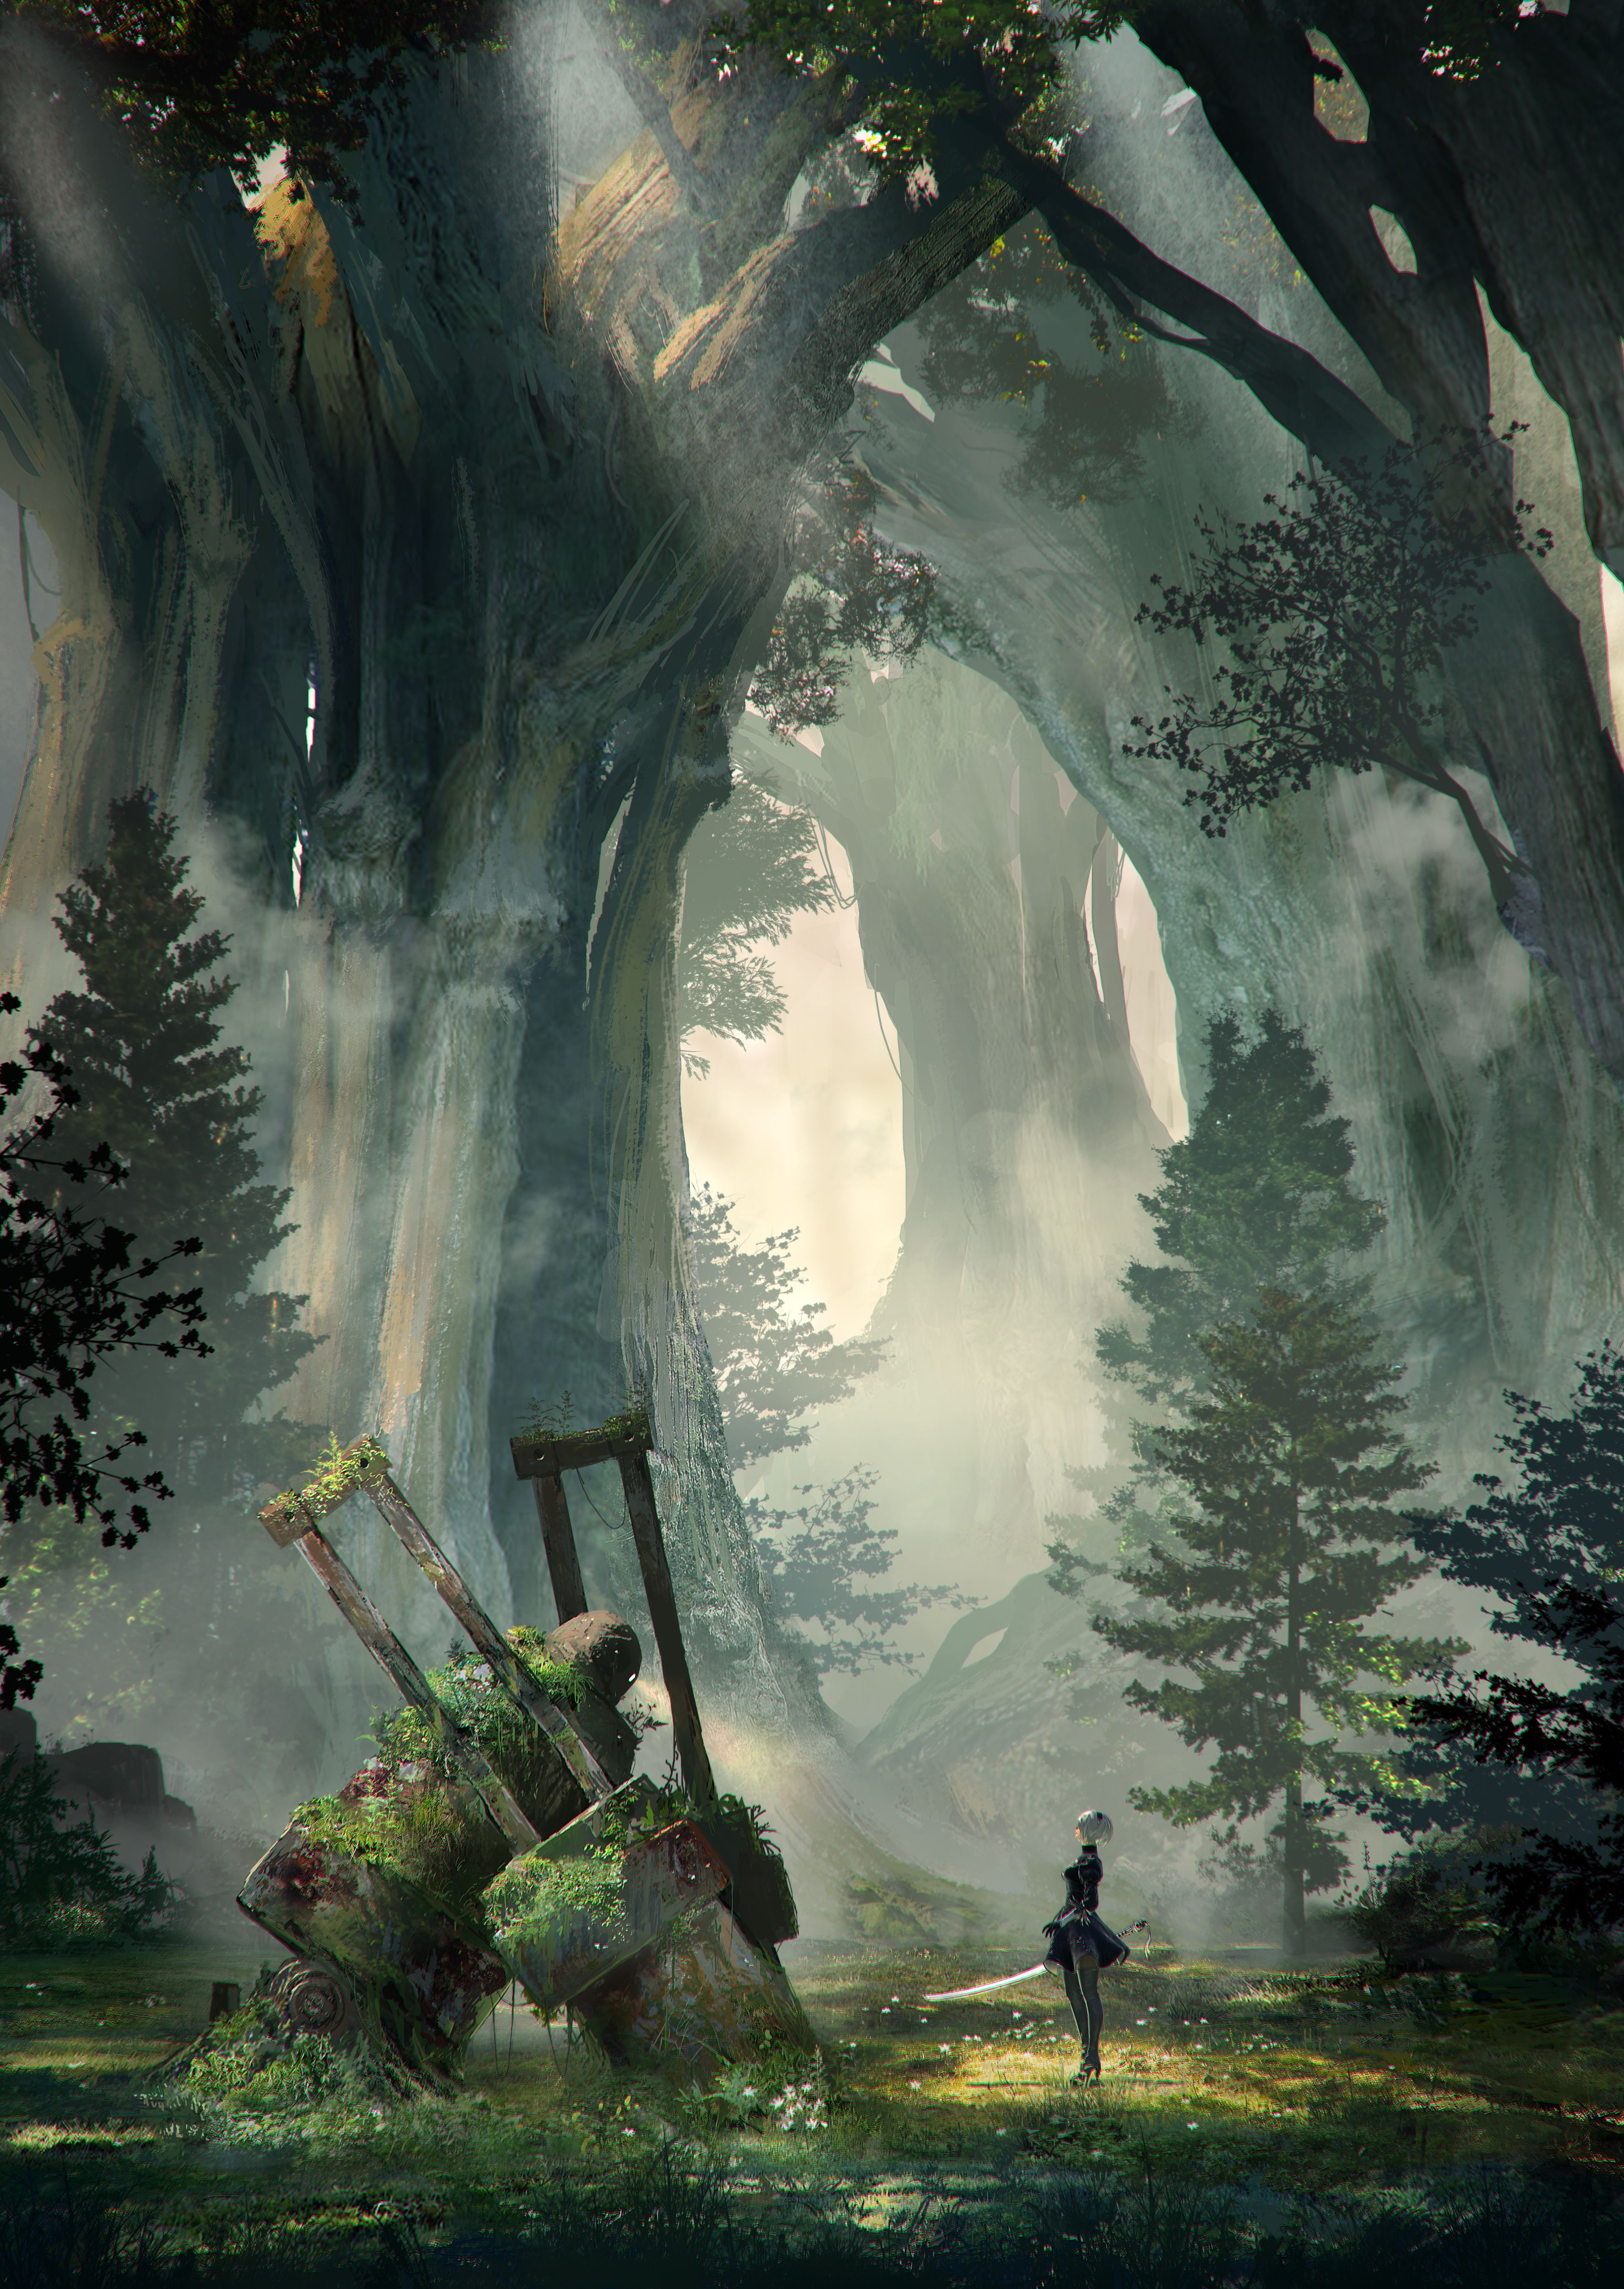 Automata Forest King Wallpaper [3547×5000] , HD Wallpaper & Backgrounds